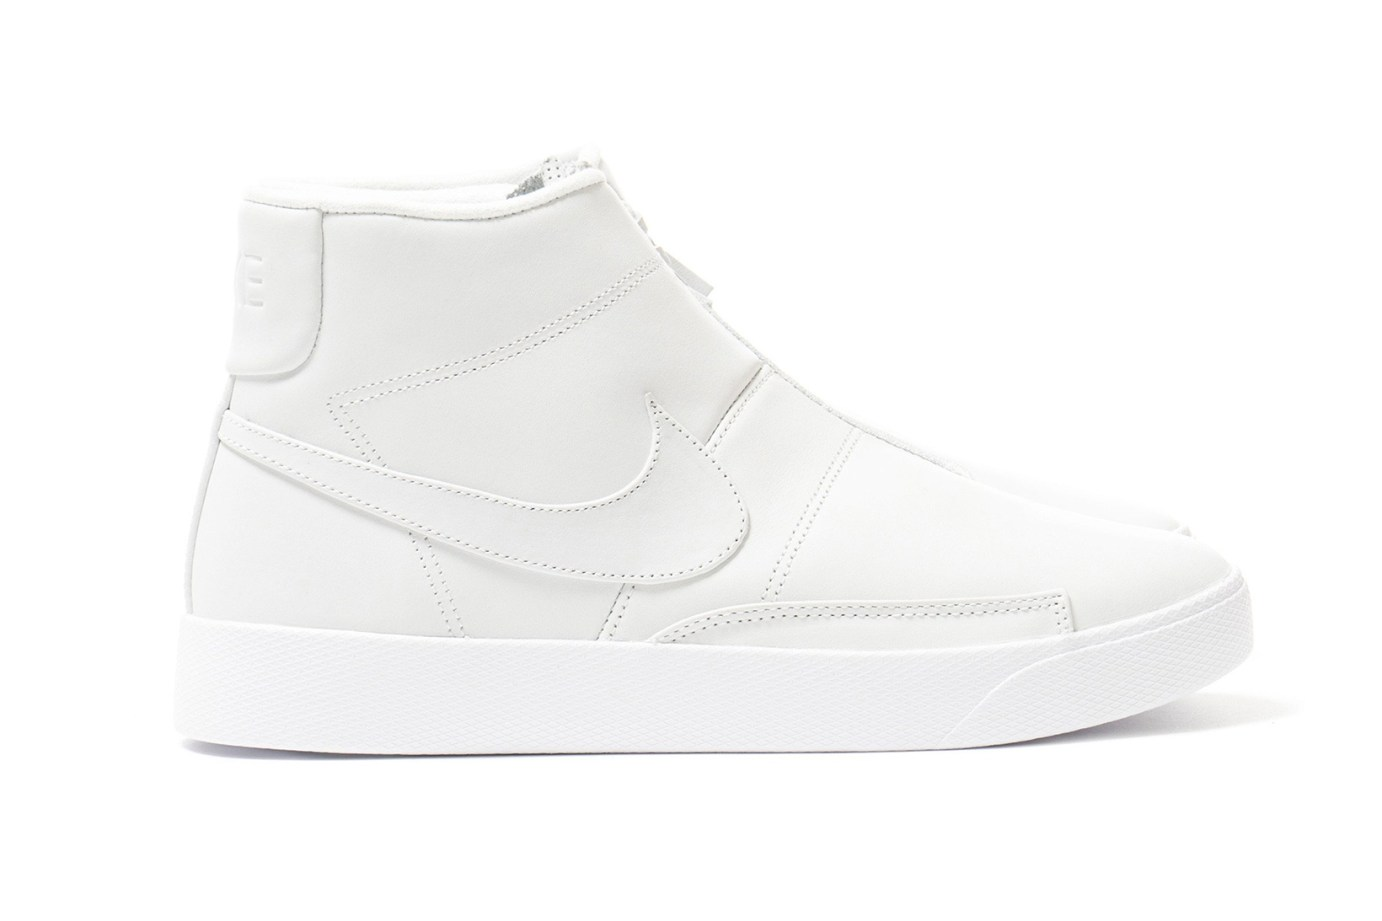 Le retour de la Nike Blazer Advanced